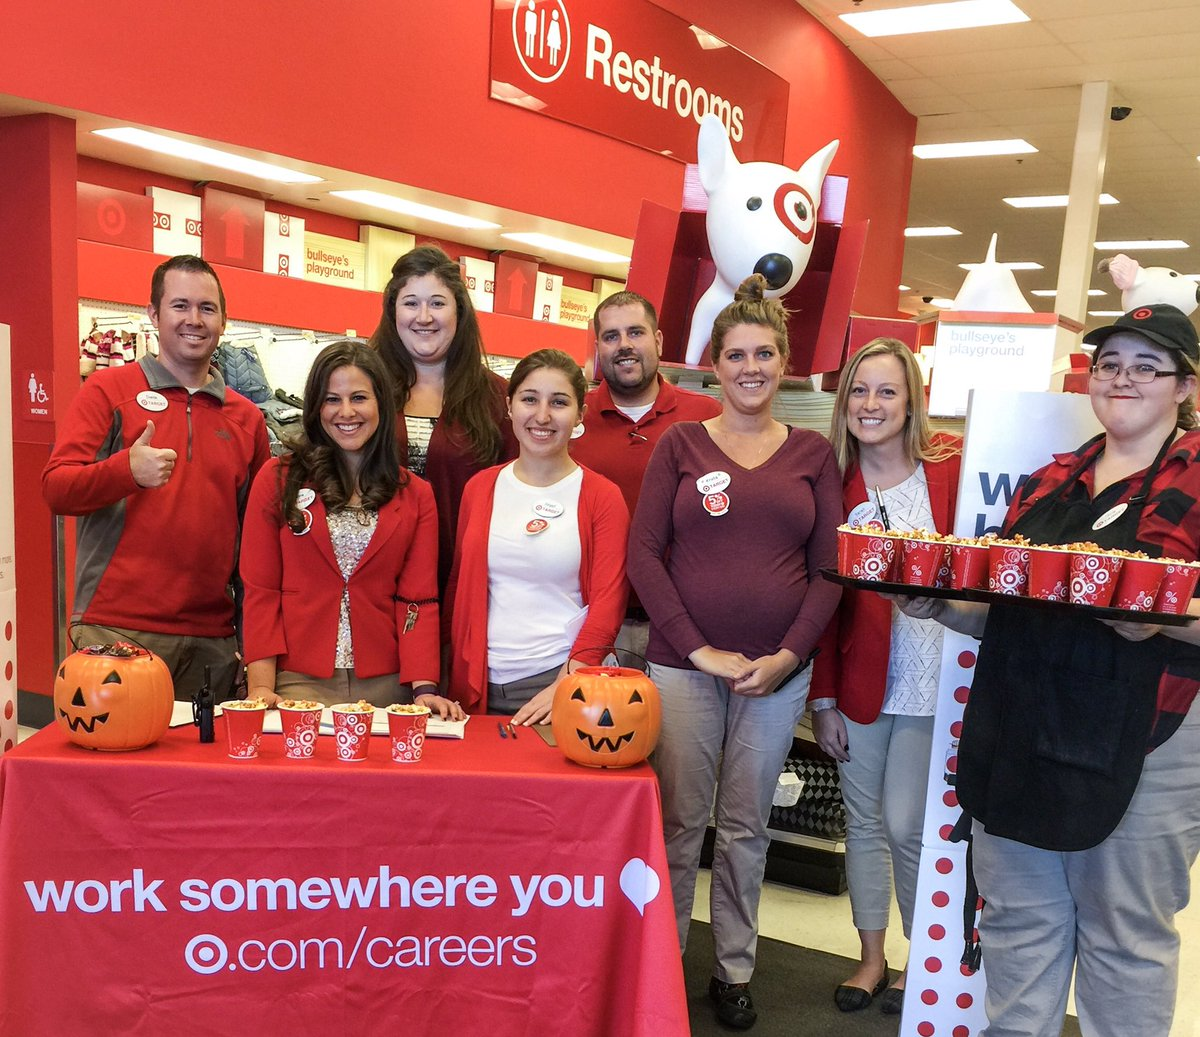 jenna domer jennadomer twitter come and join the best team ever the best people ever worksomewhereyoulove nationalhiringevent target1463pic twitter com guuzet2ewr at target